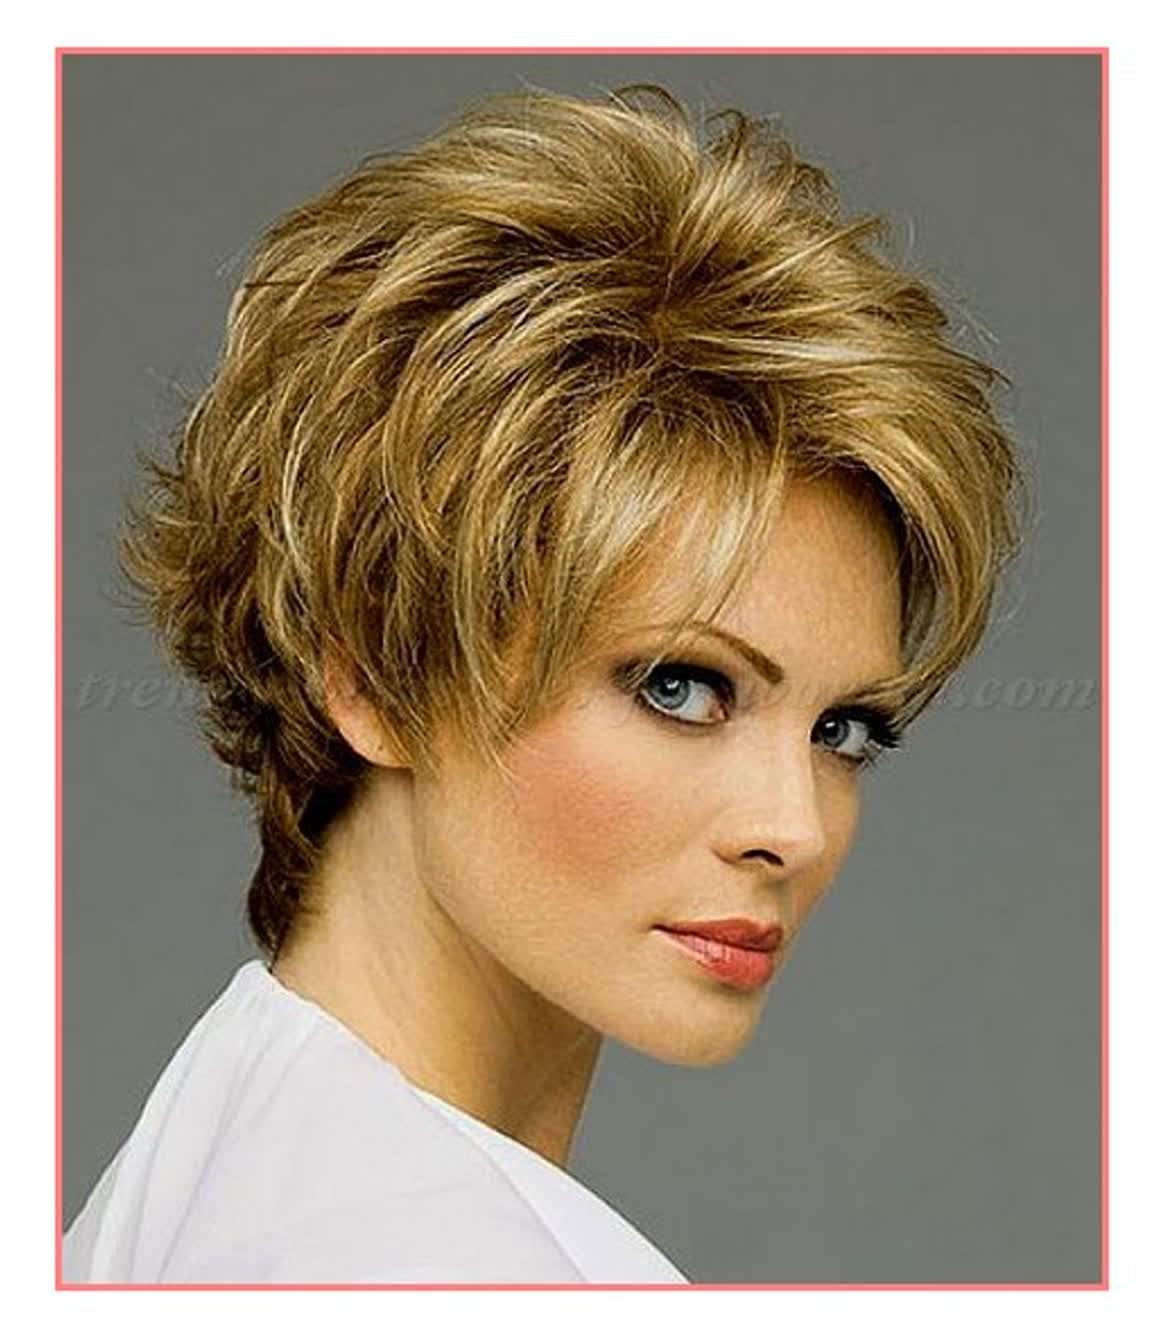 Short hairstyles for women hottest for haircuts women